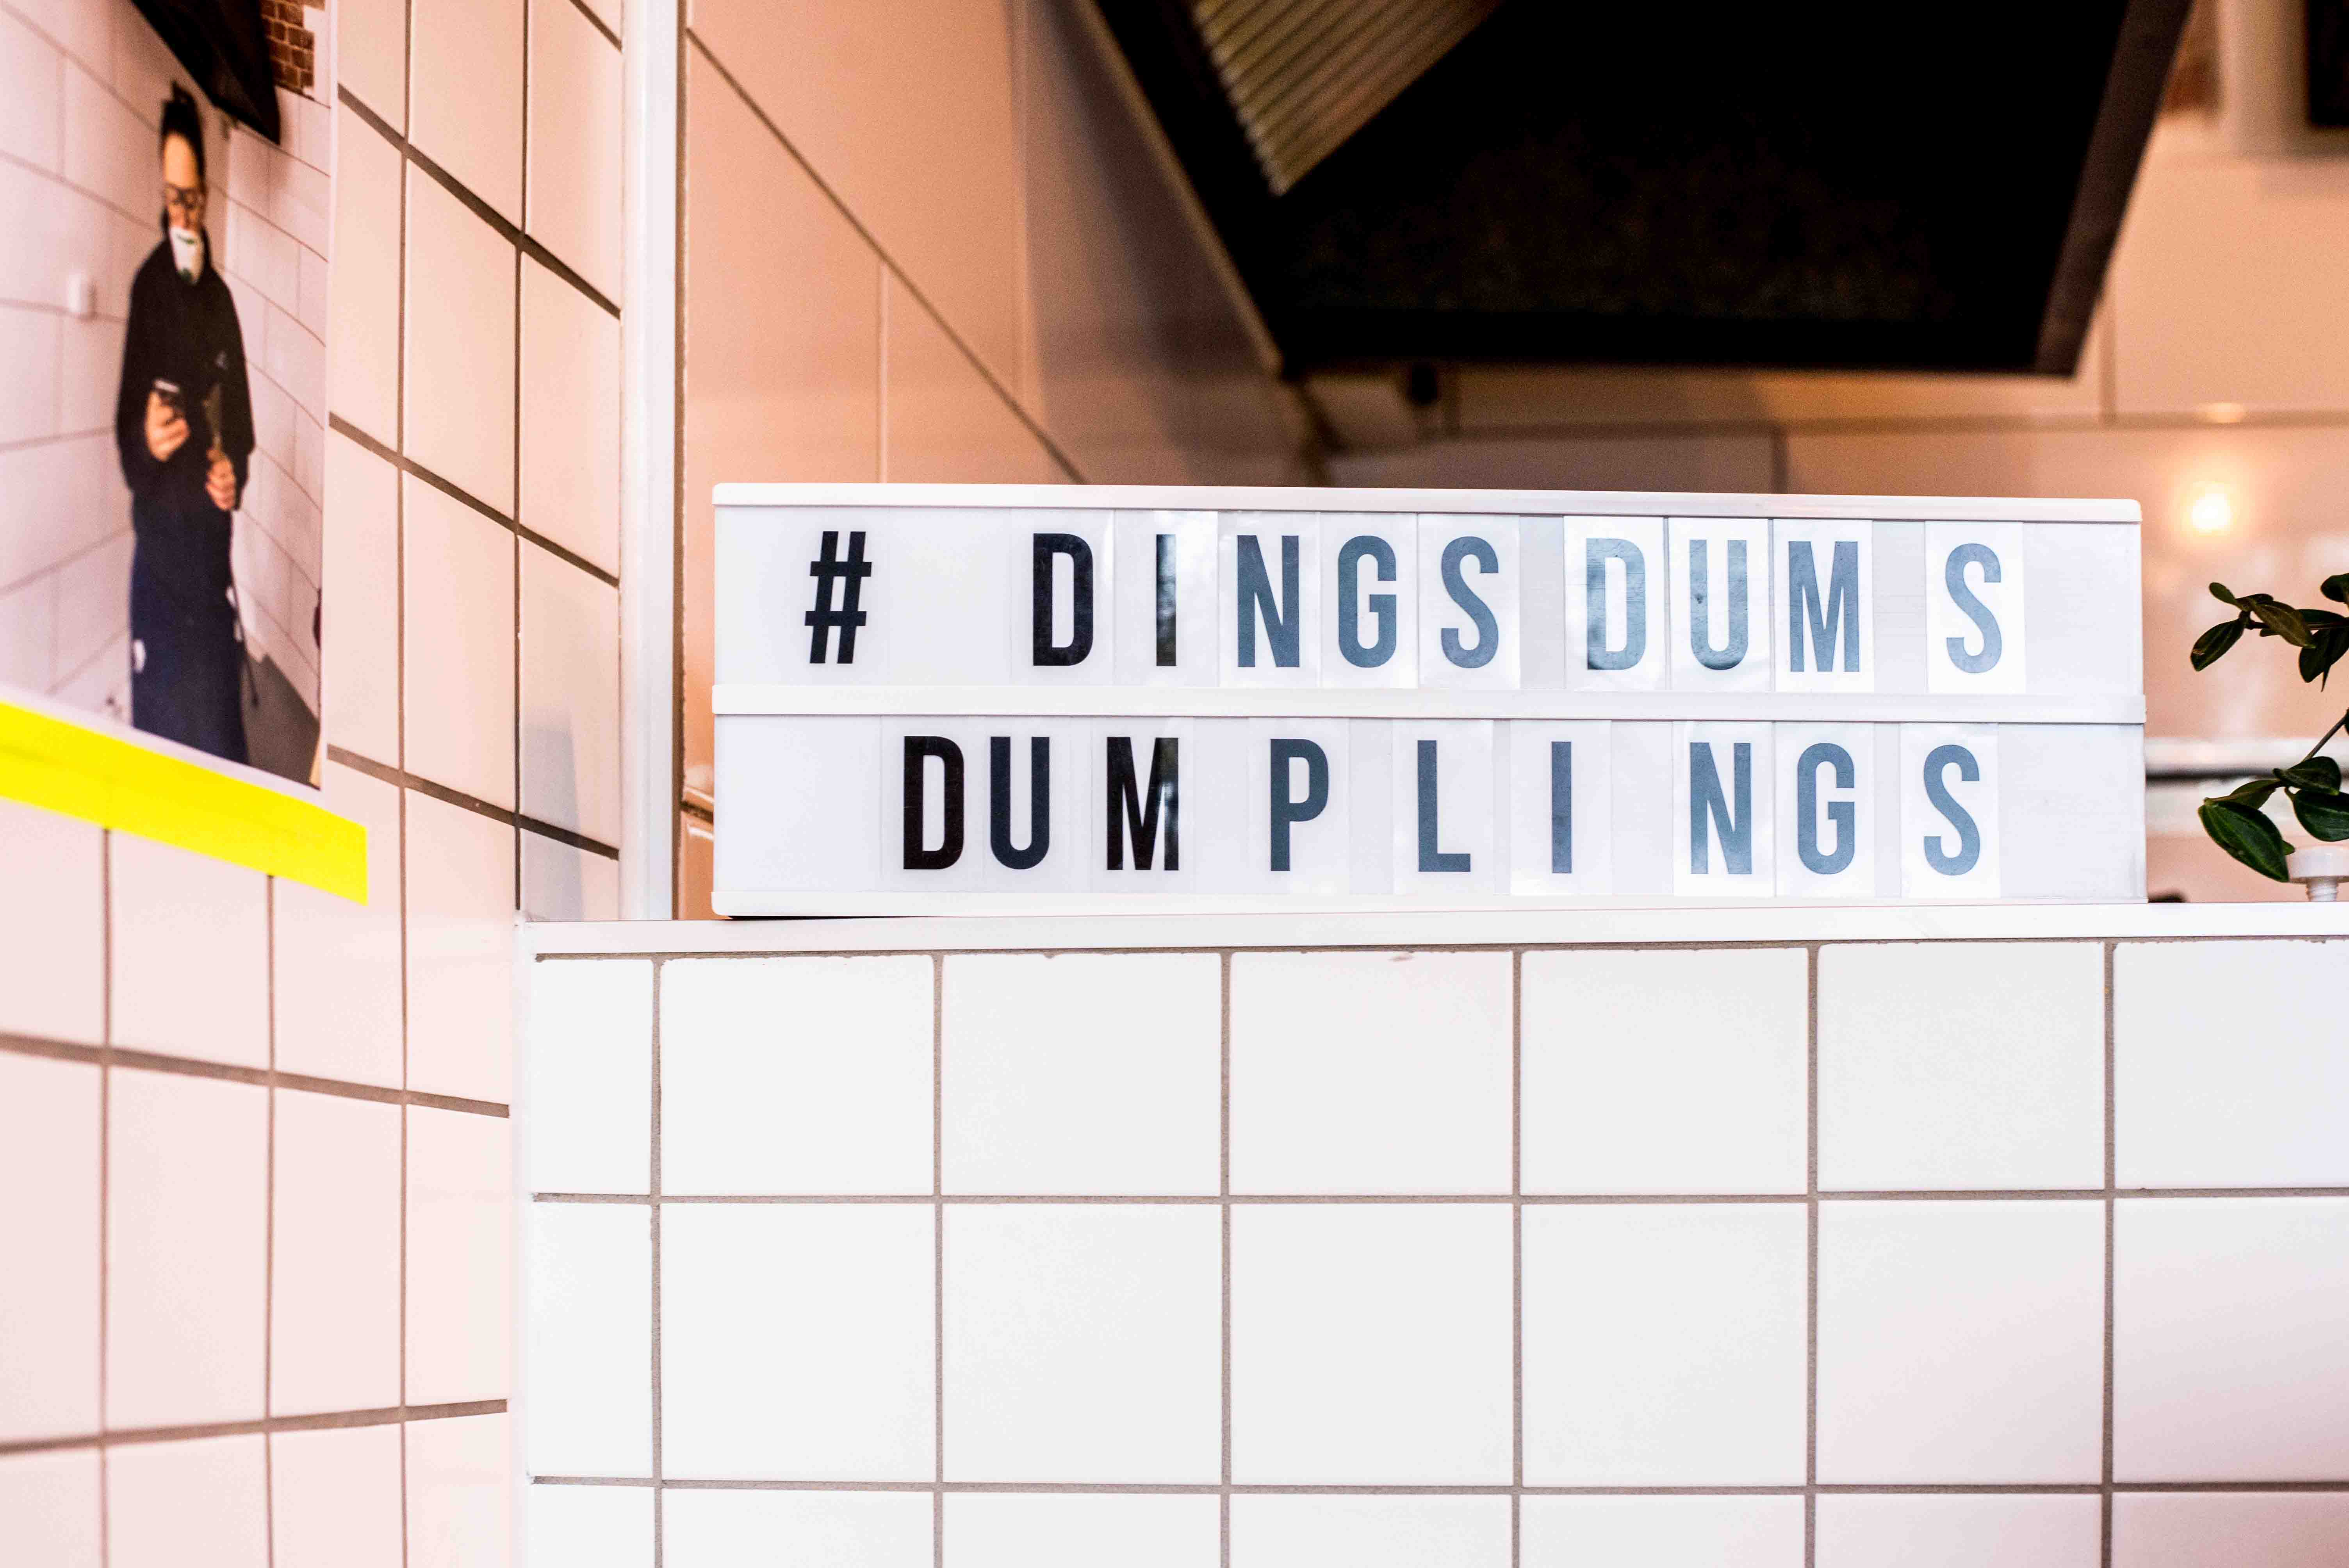 Nachhaltige Restaurants in Berlin – DingsDums Dumplings